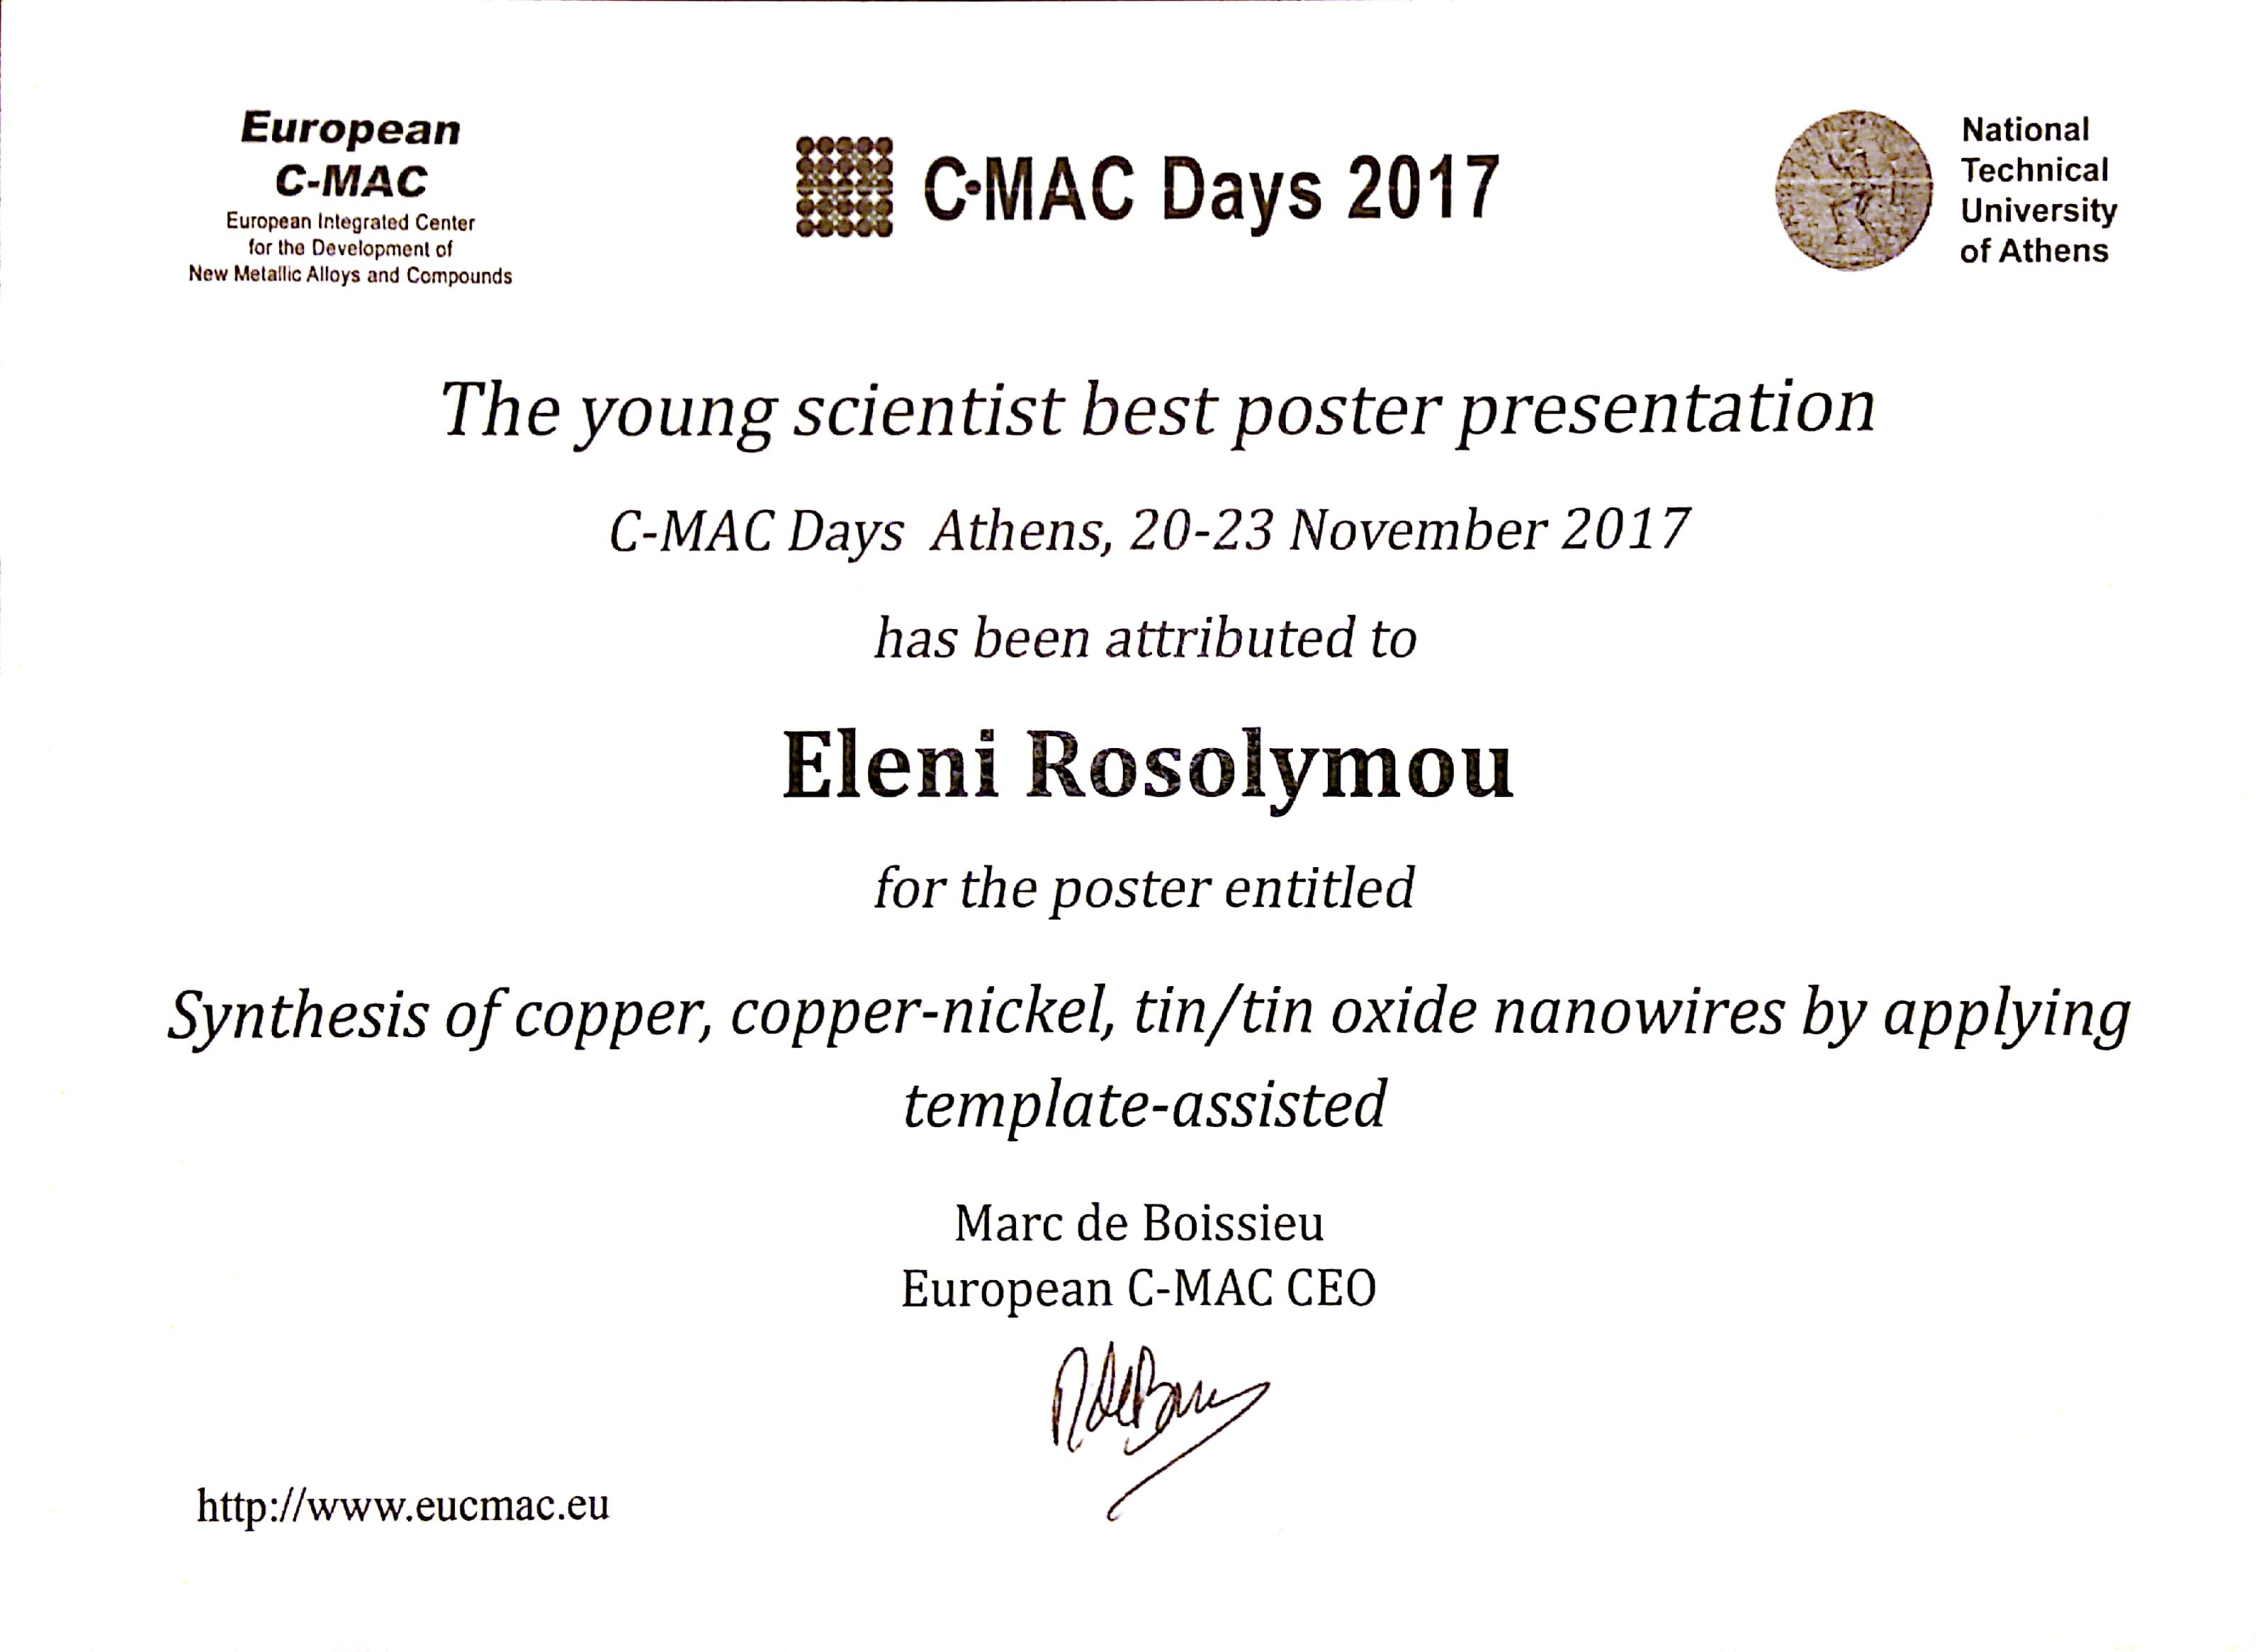 Congratulations to eleni rosolymou for the best poster presentation award certificate yelopaper Gallery